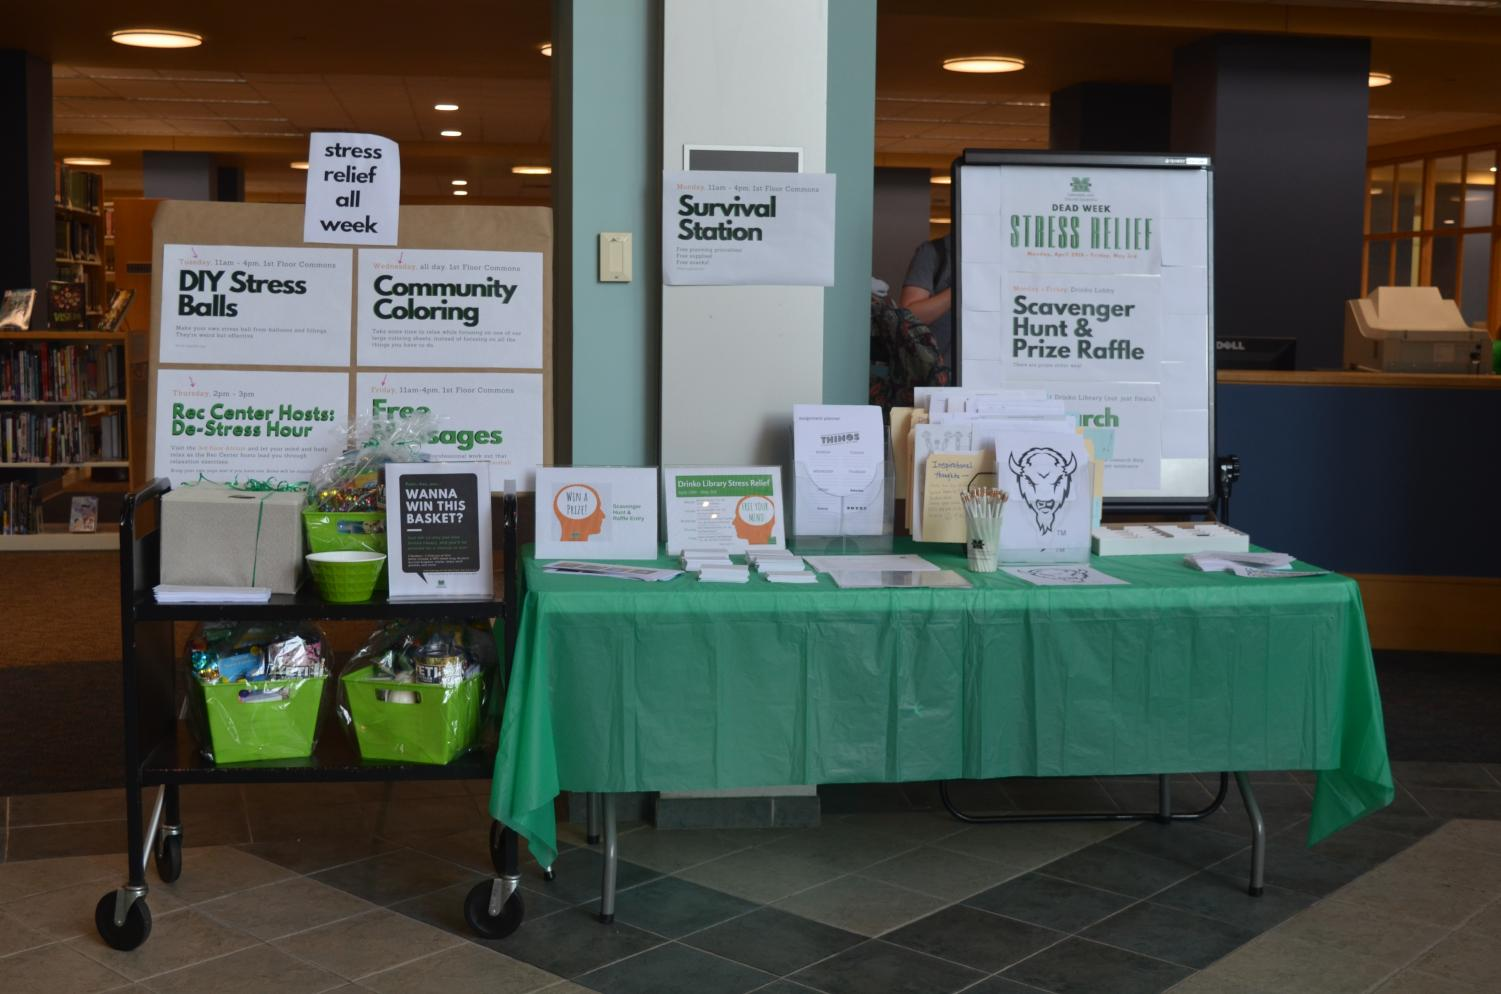 Marshall University Libraries, the Campus Activities Board and more organizations aimed to ease students' minds with relaxing activities by turning Dead Week into Stress Relief Week.